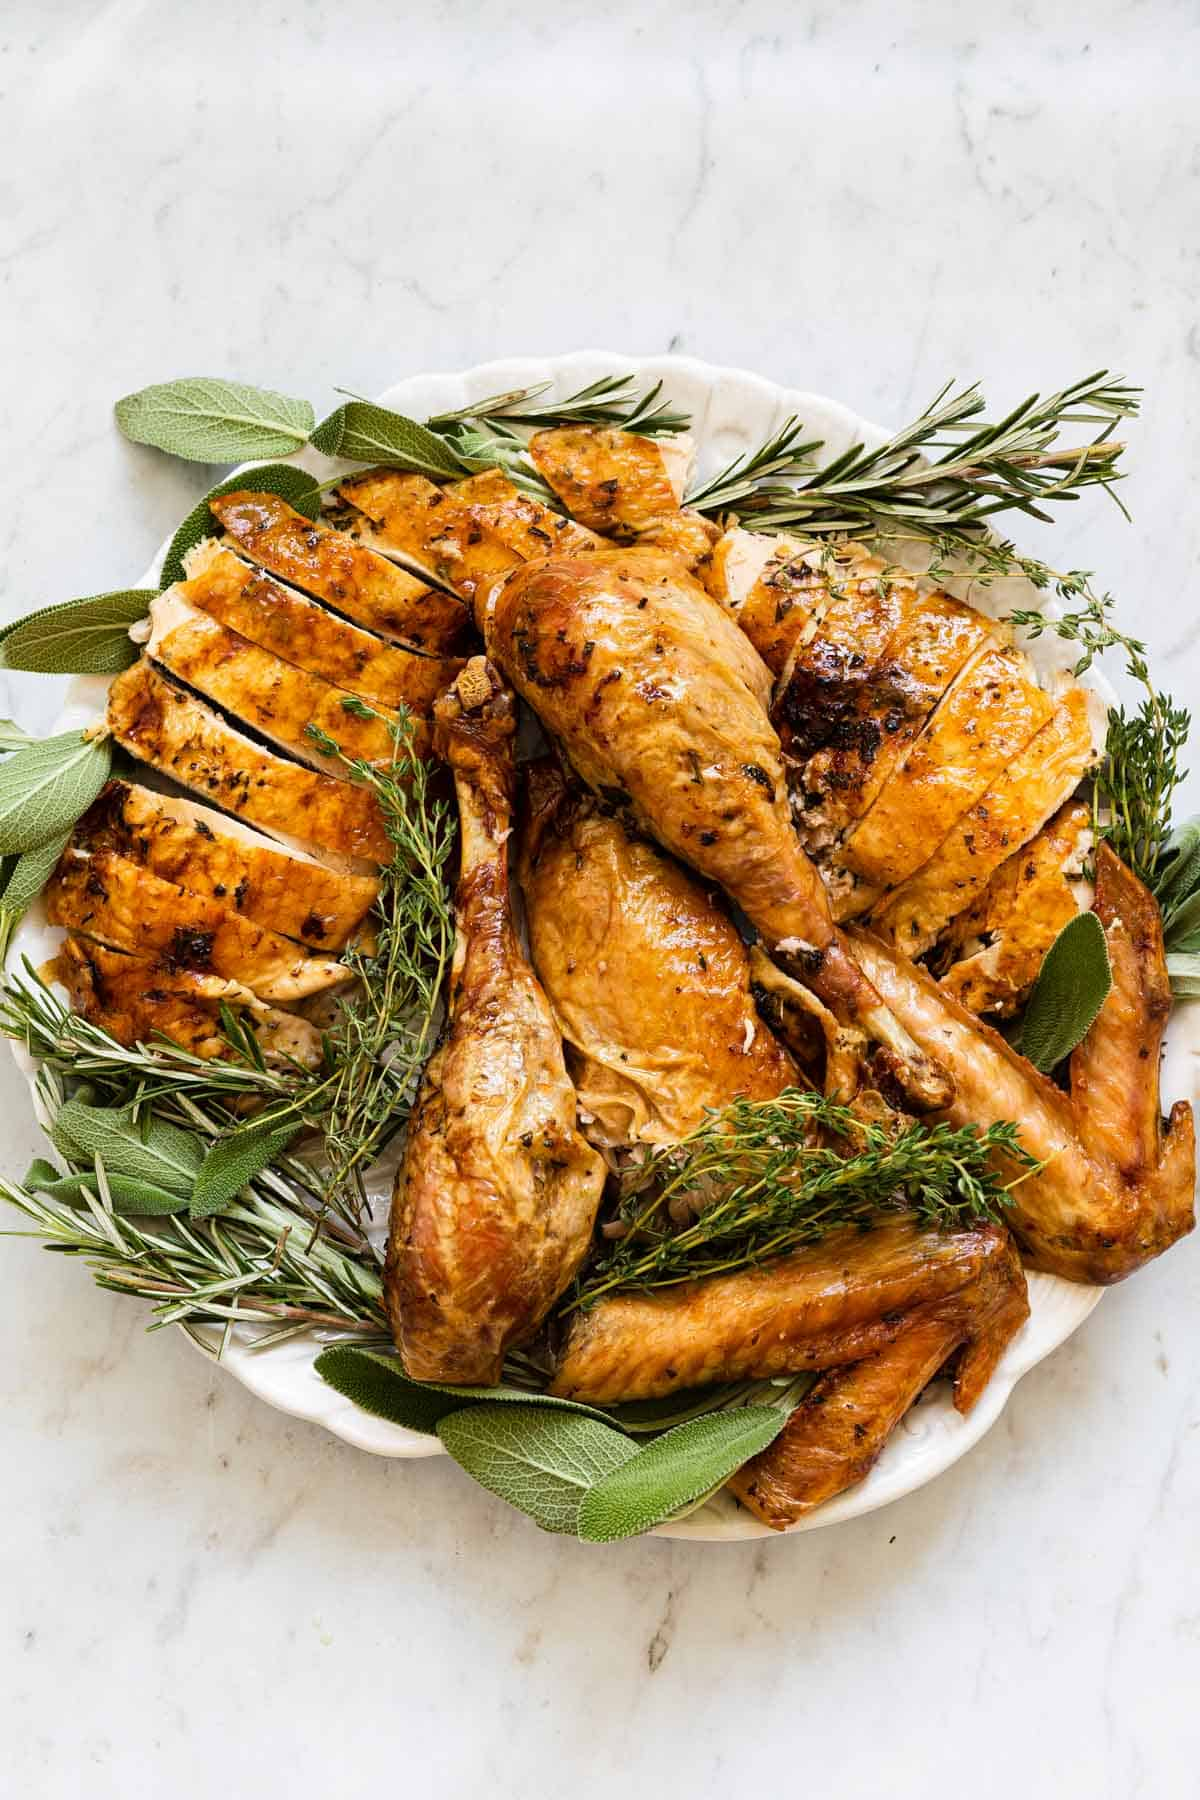 round platter with cut up roasted turkey and fresh herbs